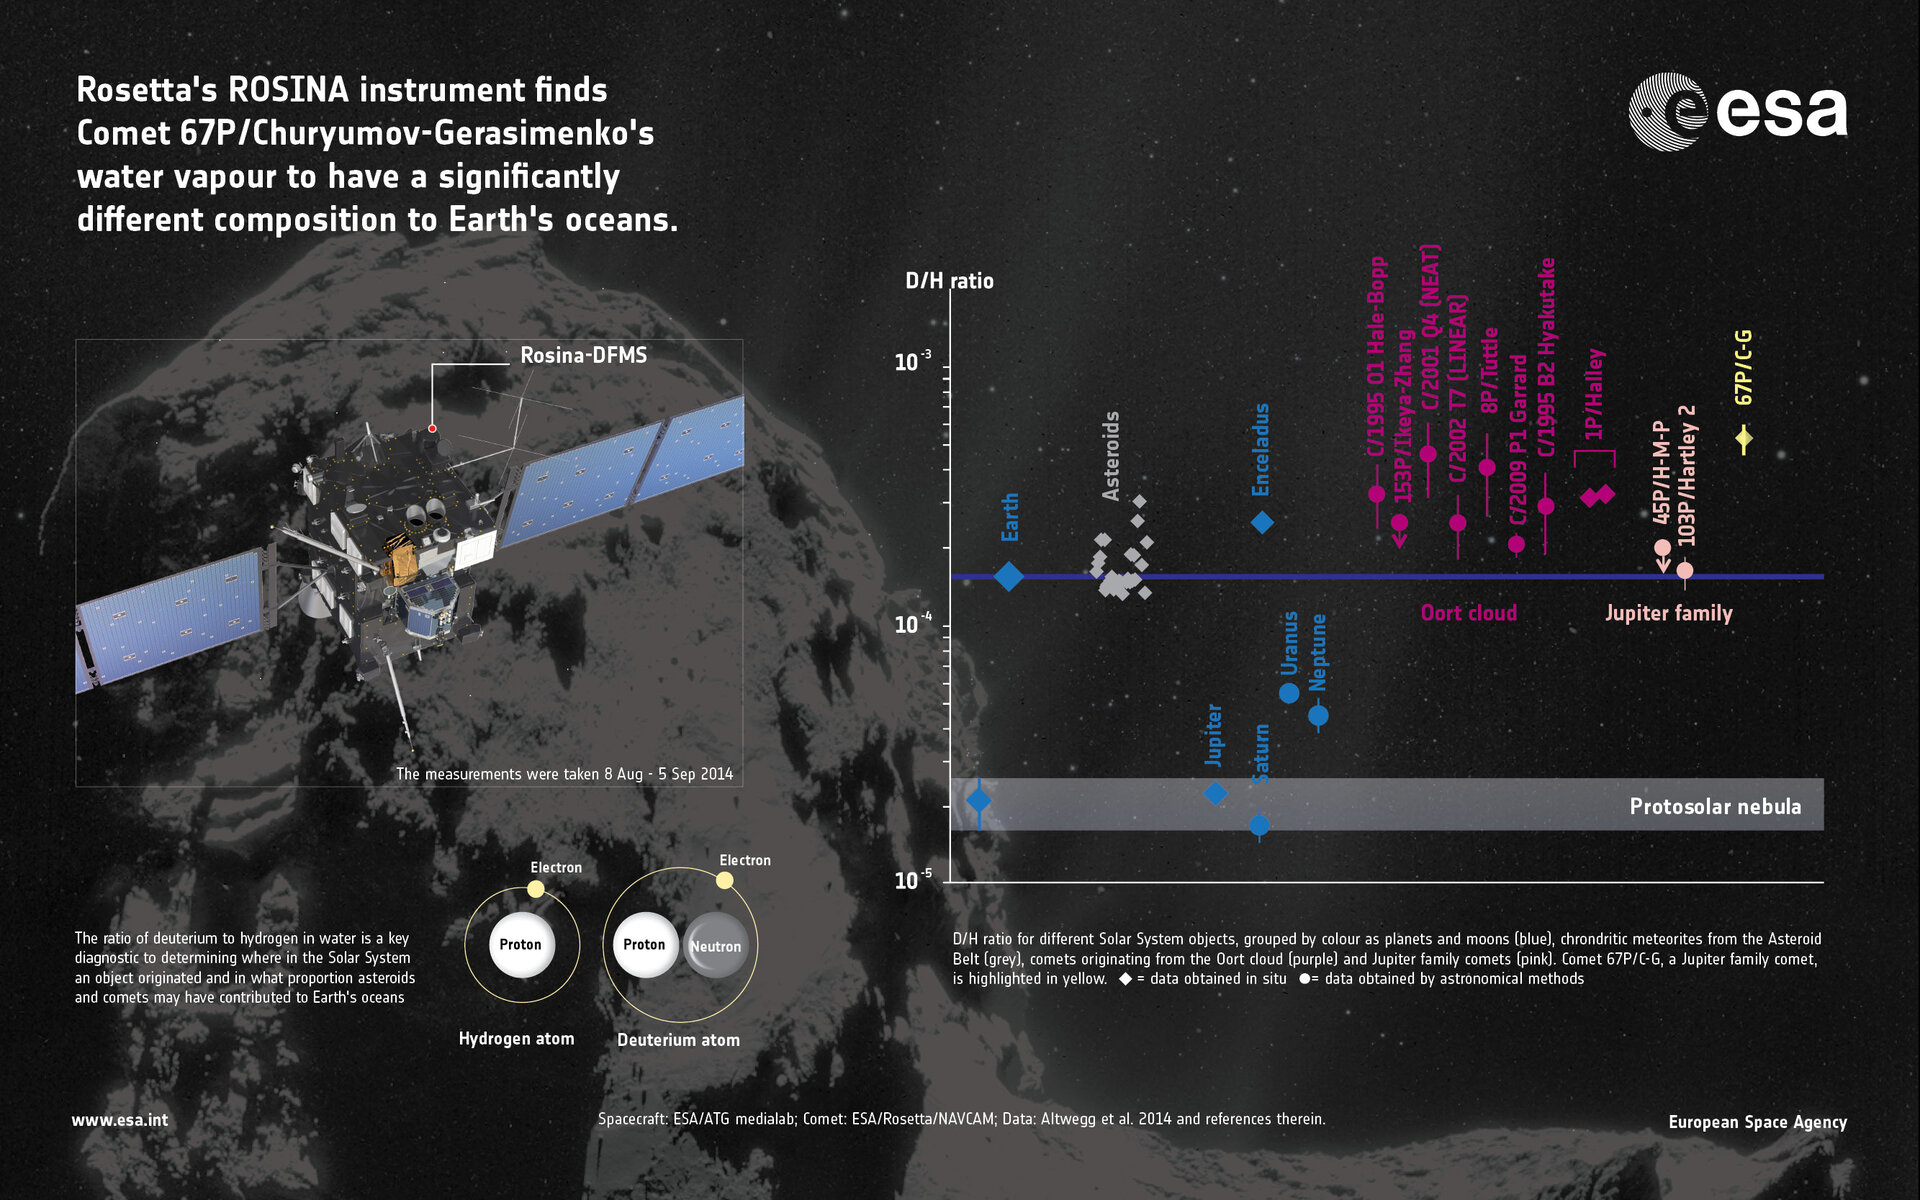 First measurements of comet's water ratio